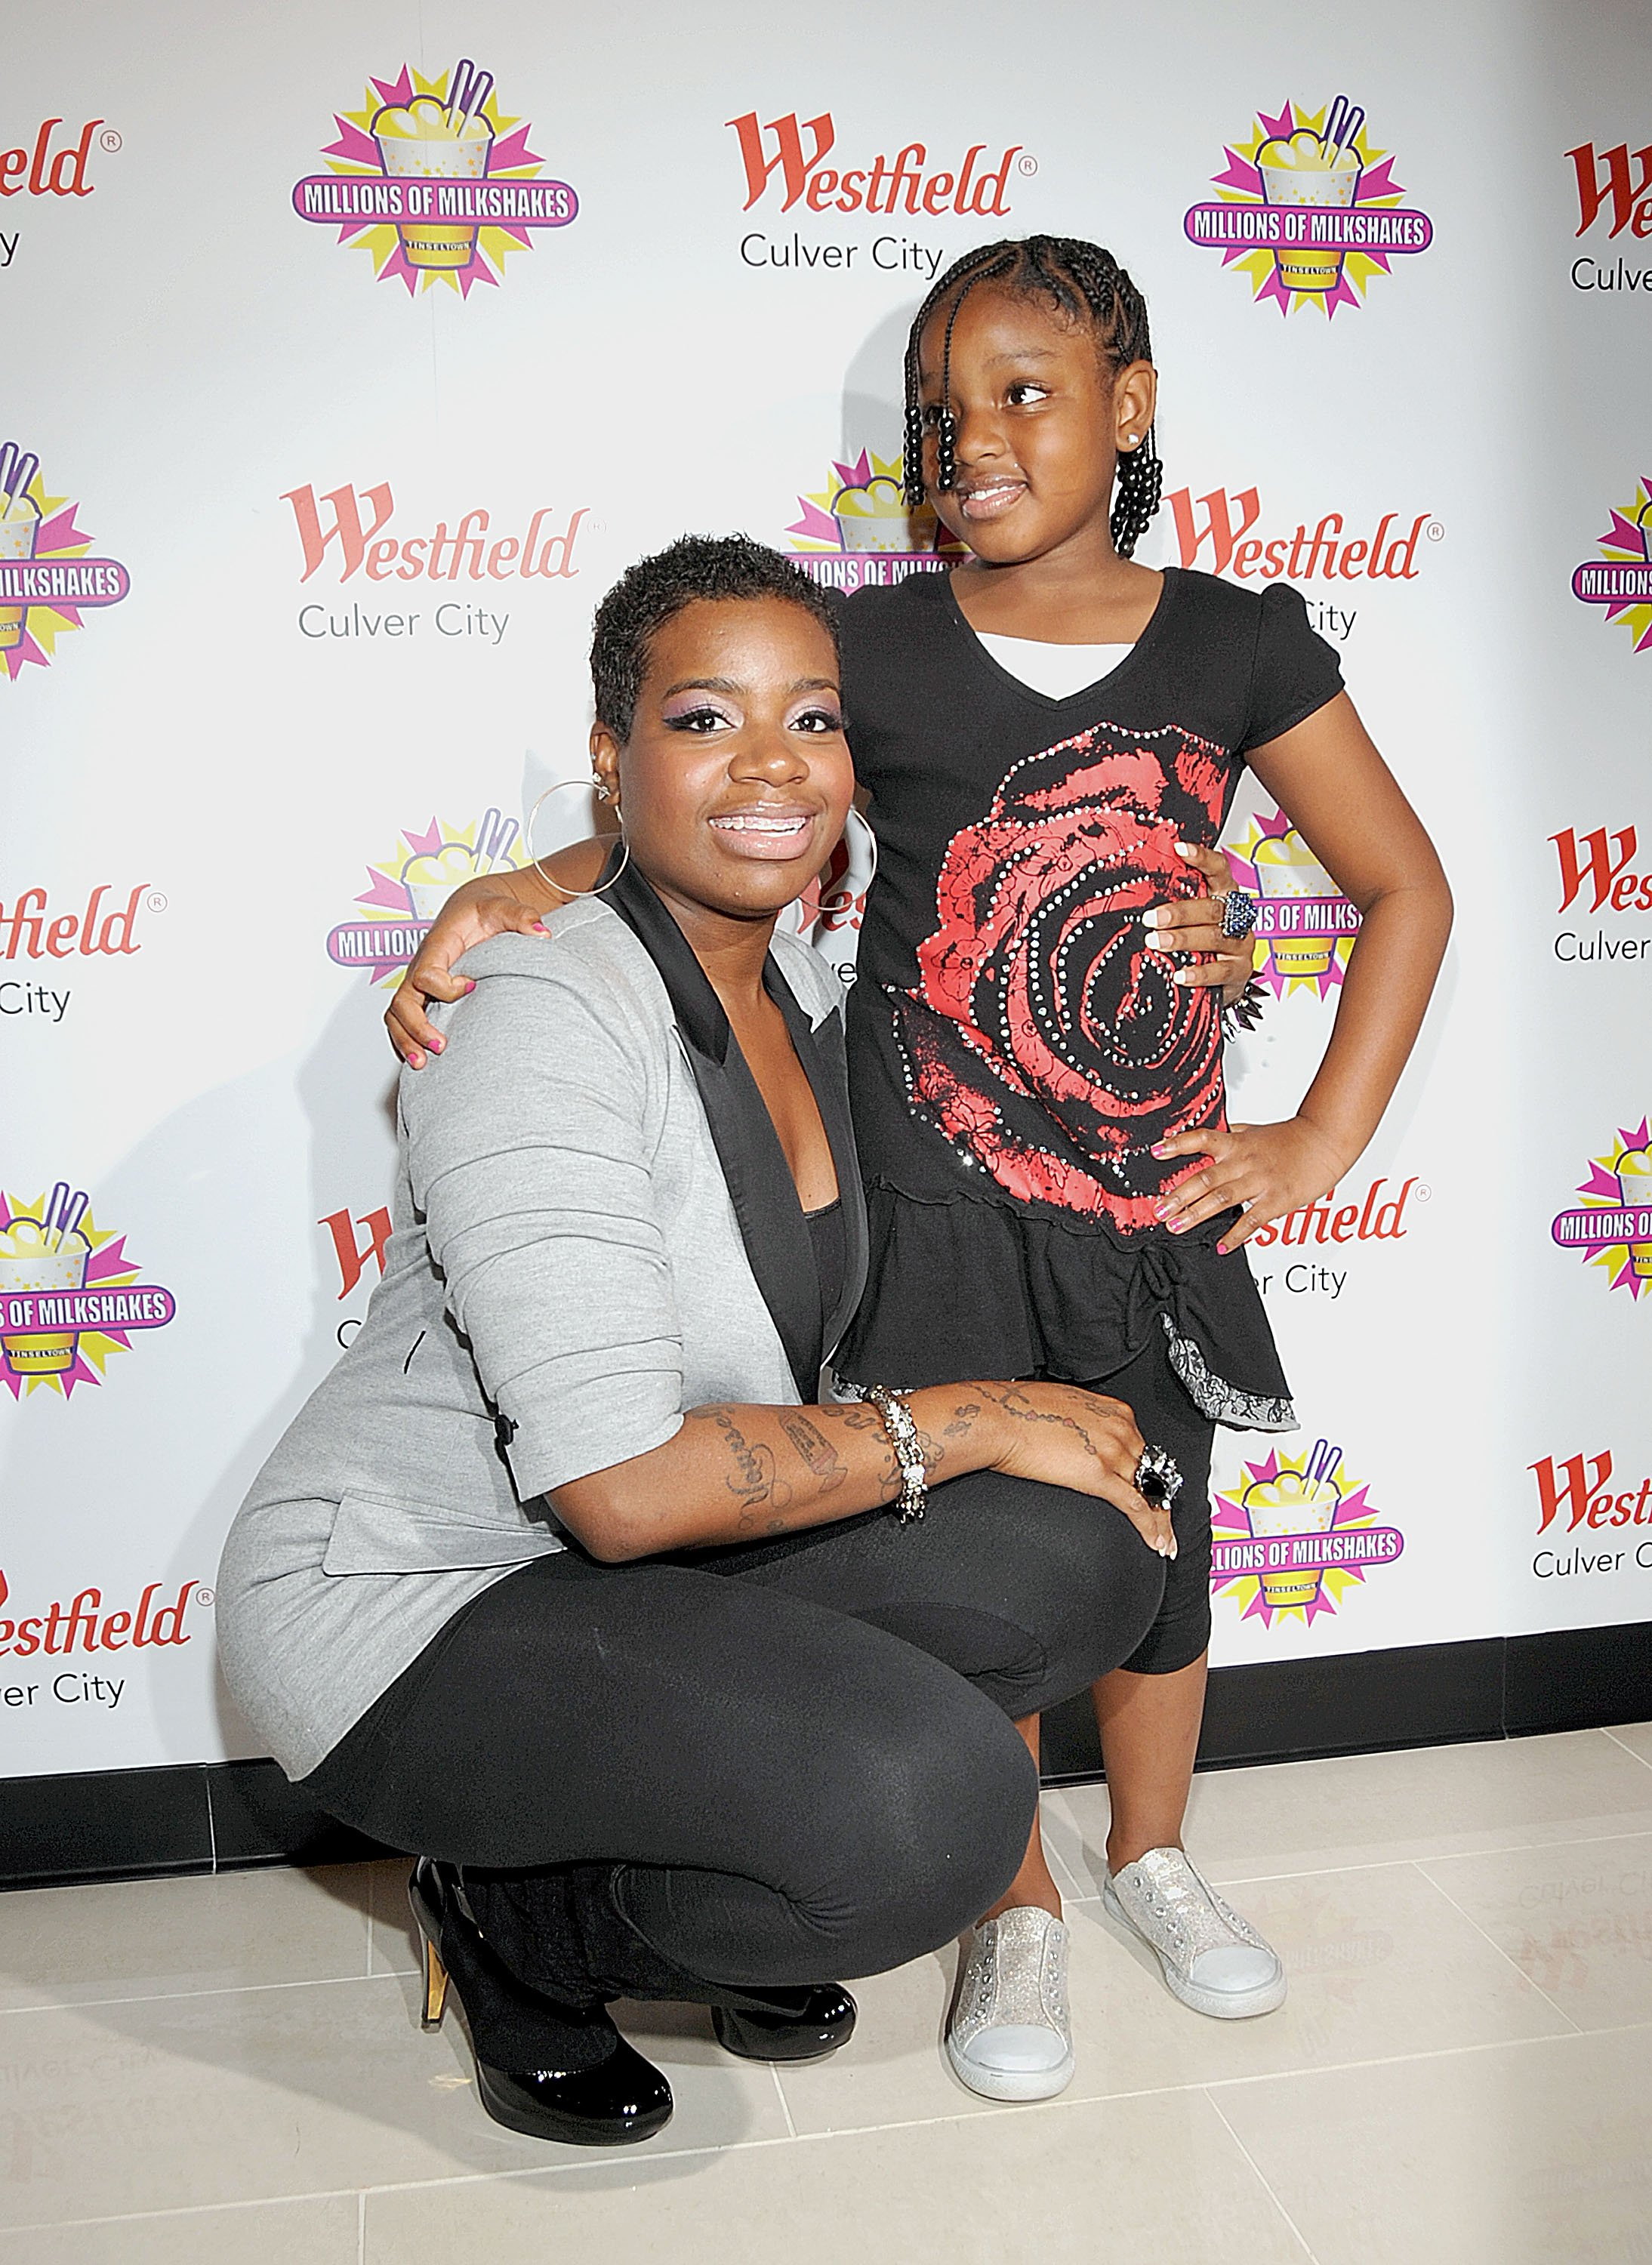 Fantasia Barrino and daughter Zion Barrino at Millions of Milkshakes in 2010 | Source: Getty Images